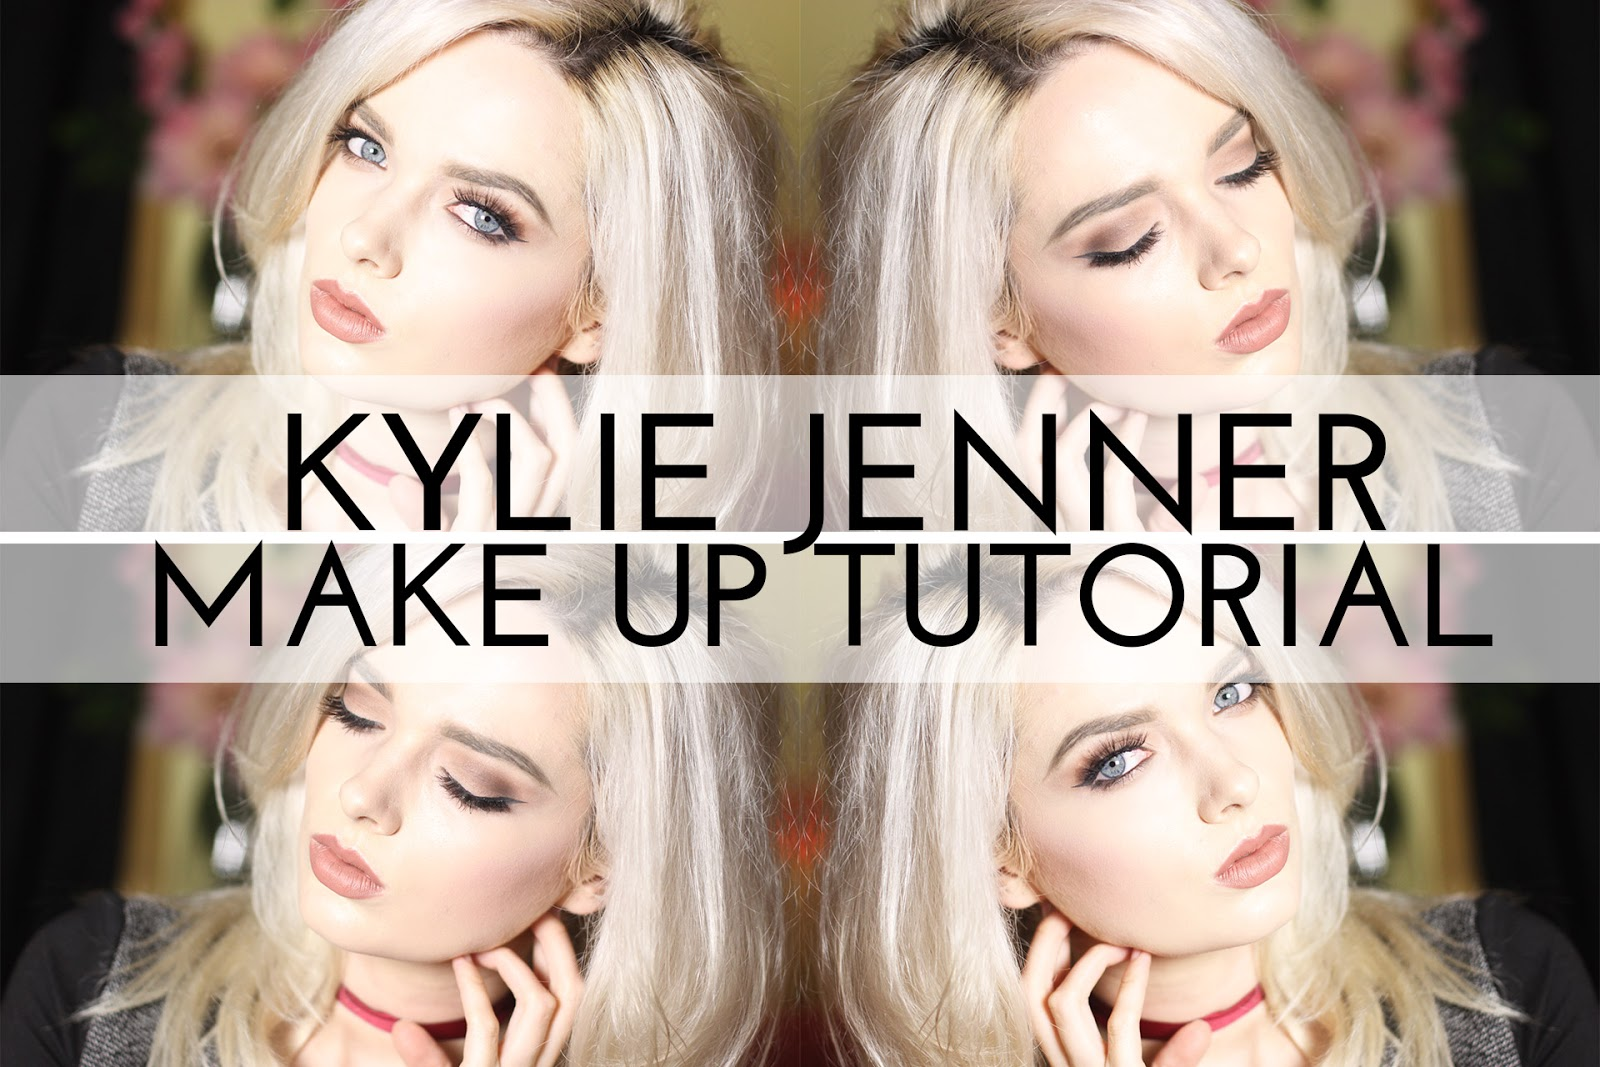 kylie jenner tutorial, make up tutorial, my pale skin, pale skin, 90s make up, lipstick, mac velvet teddy, pale skin